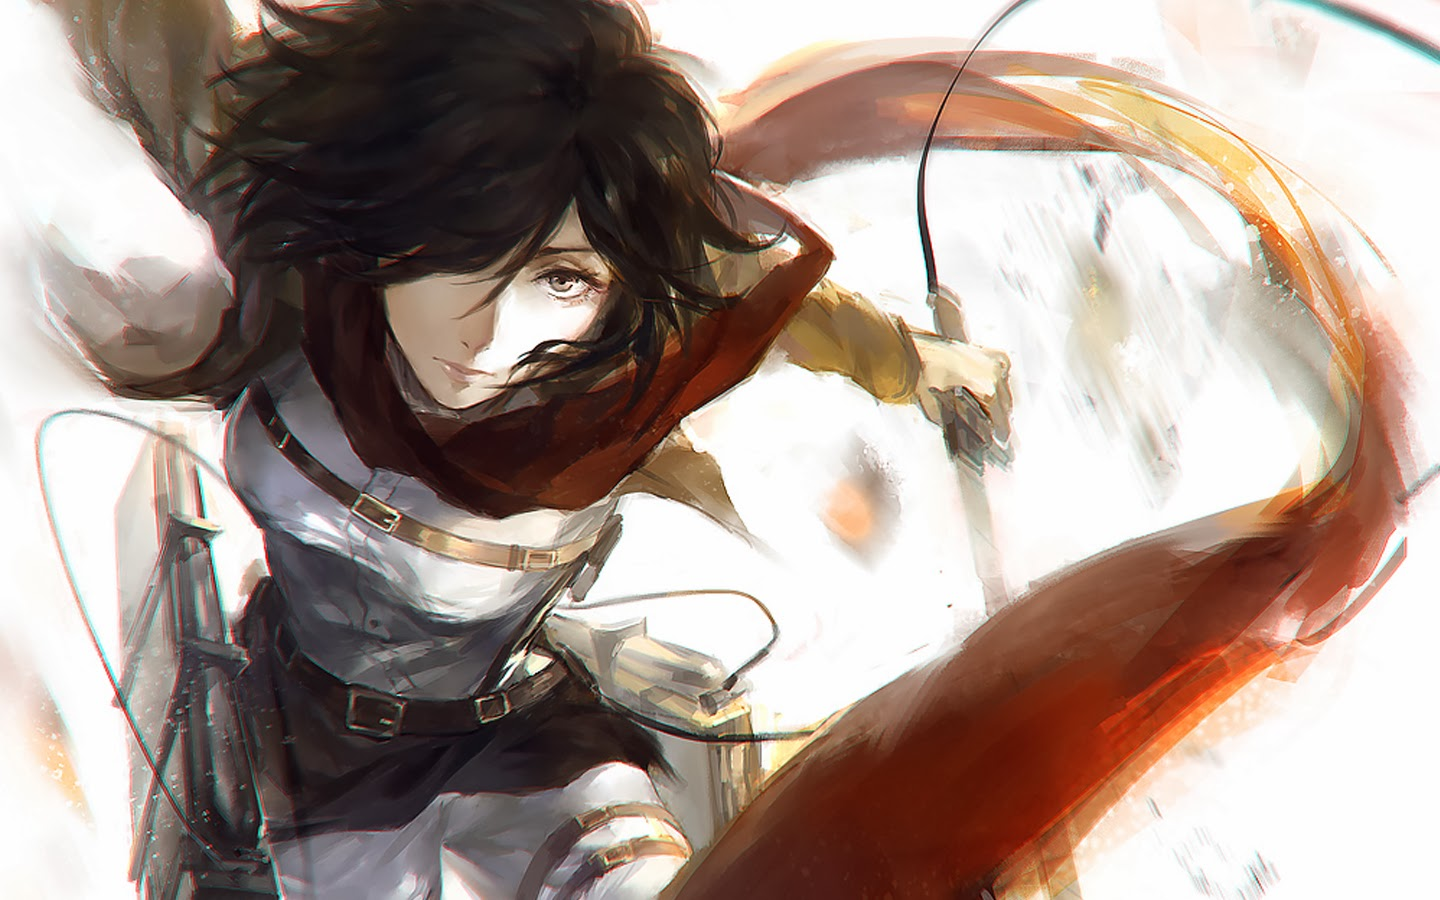 mikasa Attack ackerman titan sexy on